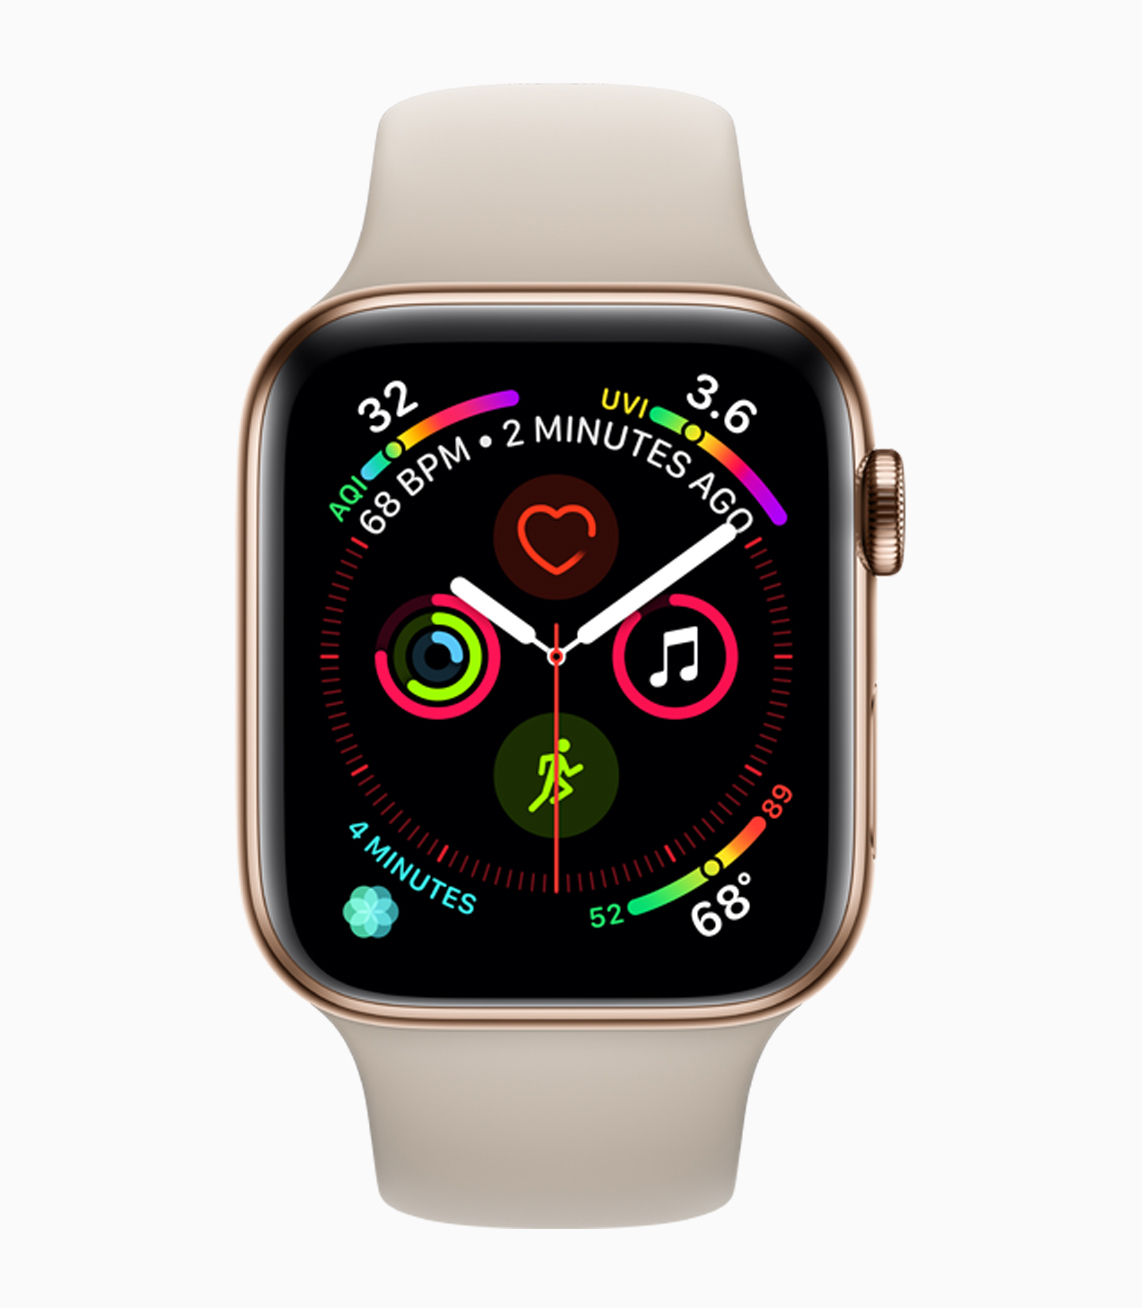 Apple Watch Series 4 Boasts Larger Display, Electrocardiogram and Fall Detection